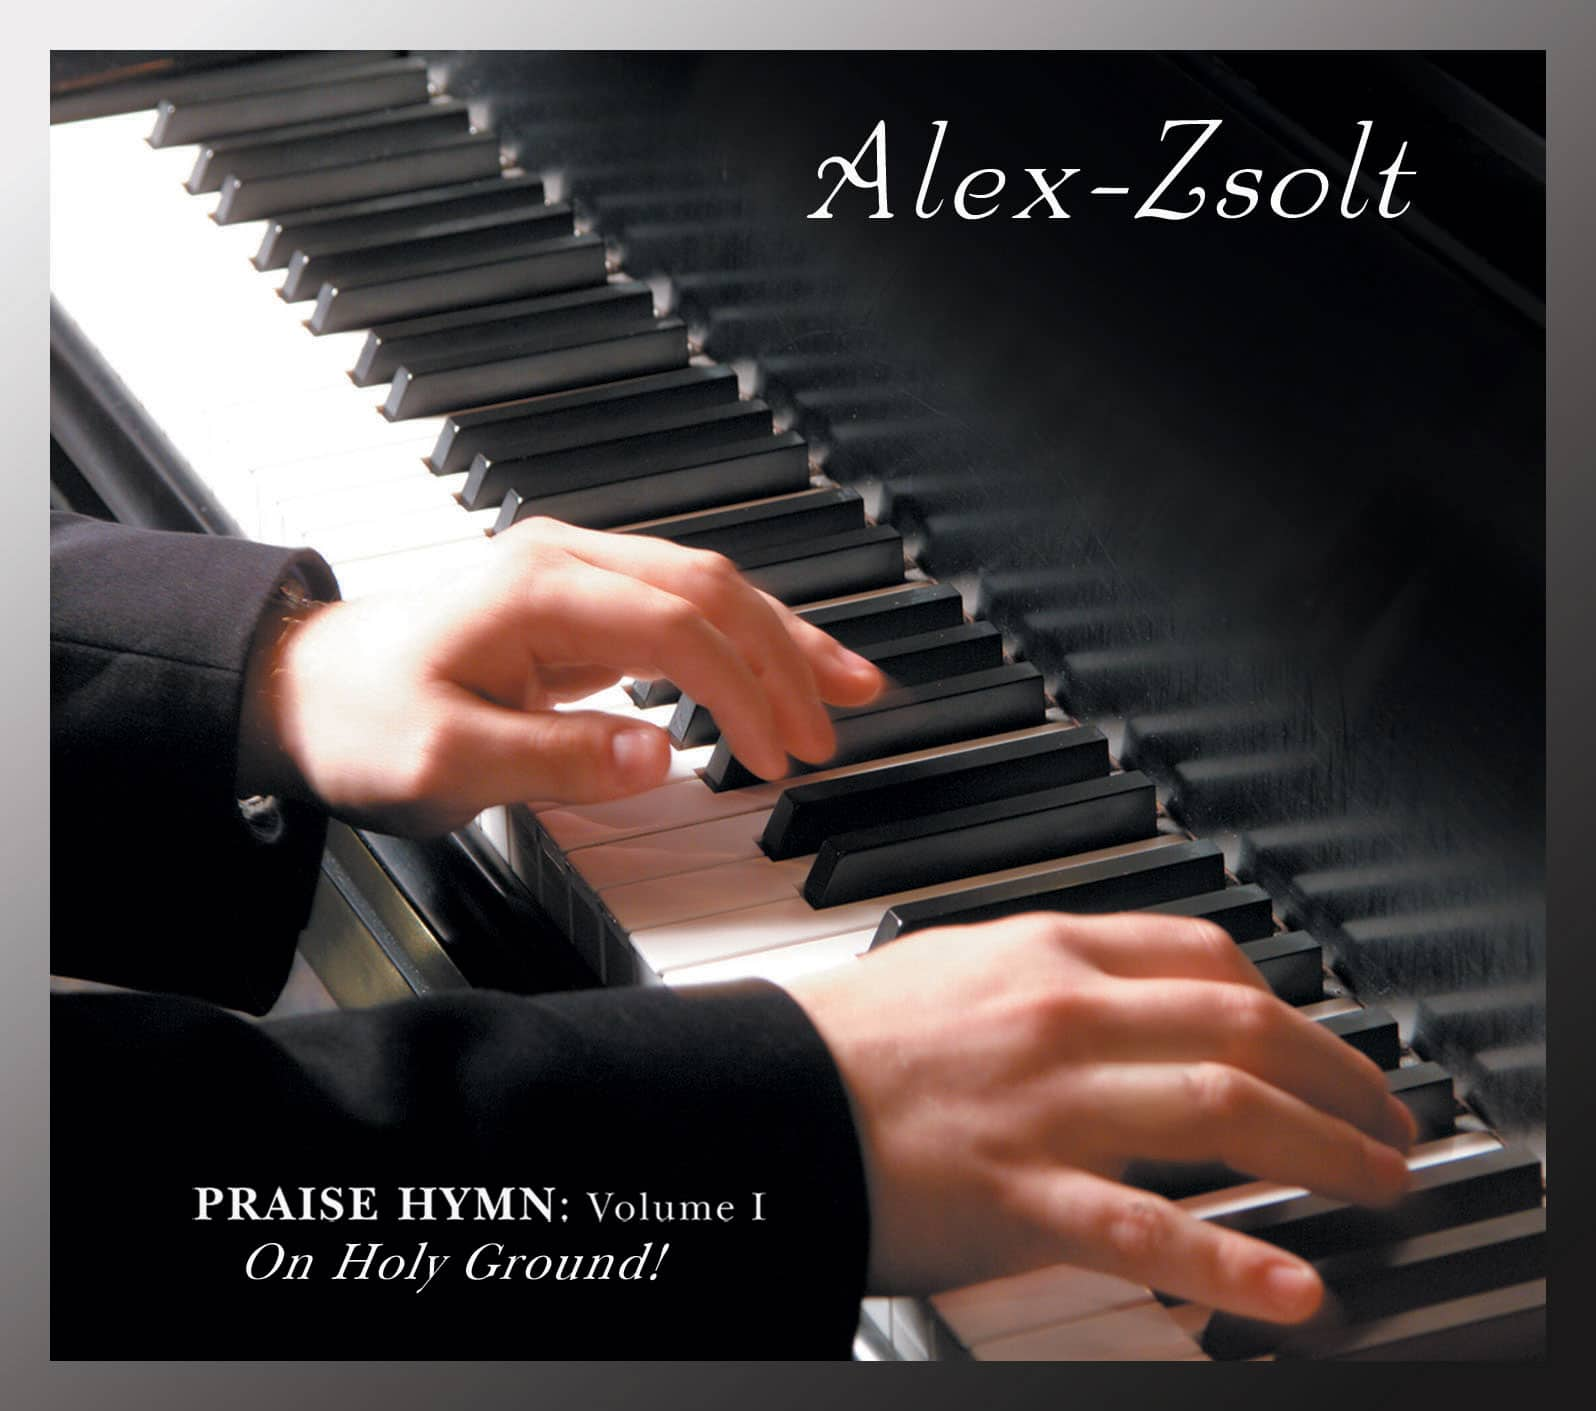 Praise Hymn Volume 1 by Alex-Zsolt